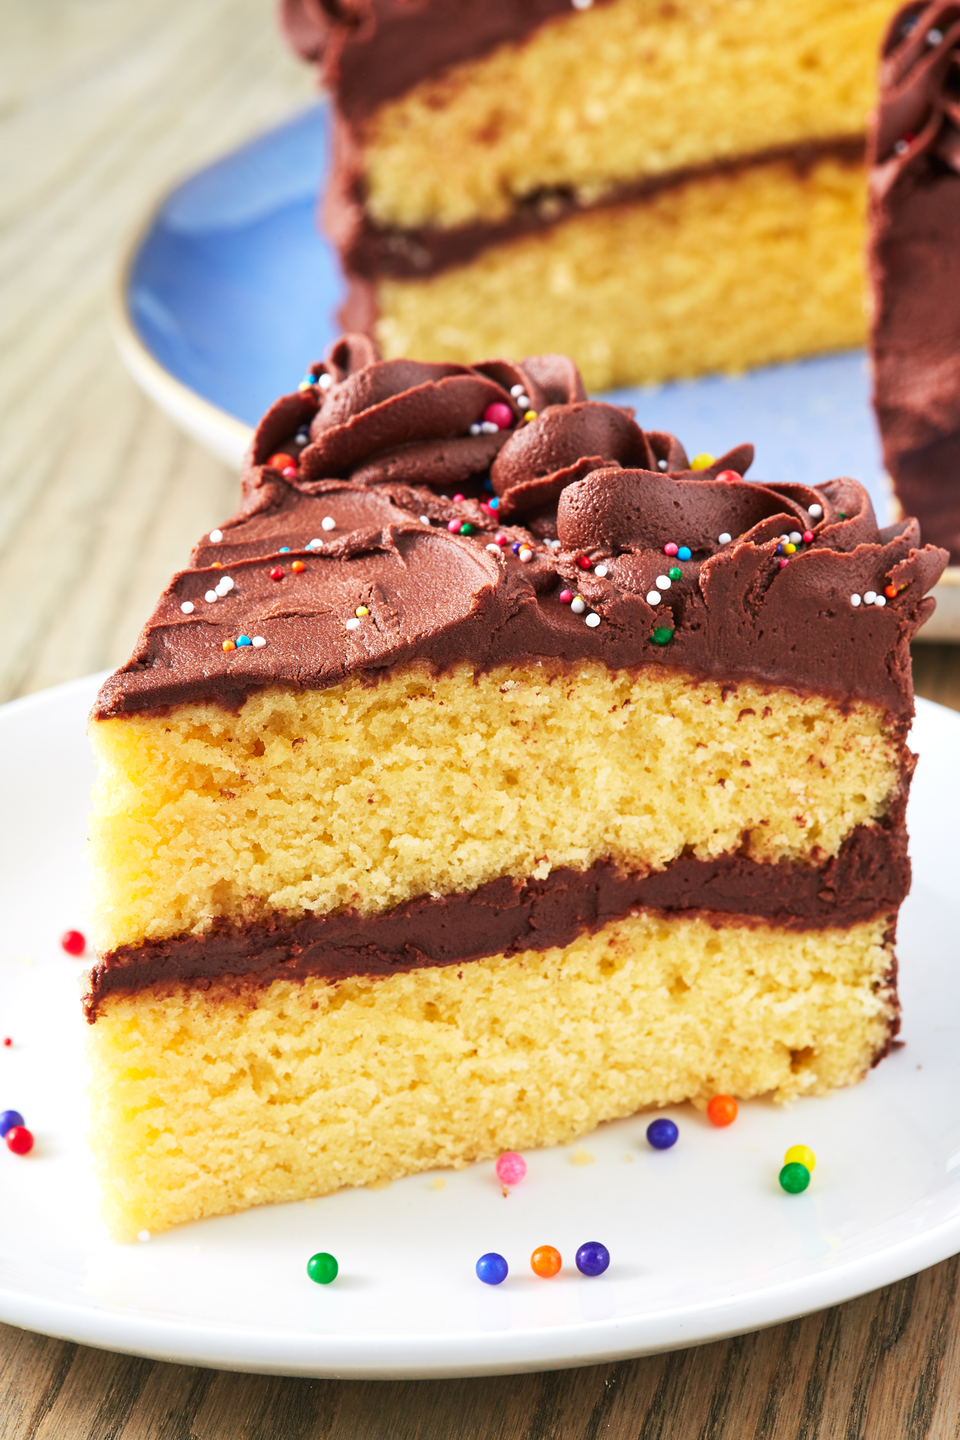 "<p>Not sure what to make? You can't go wrong with this.</p><p>Get the recipe from <a href=""https://www.delish.com/cooking/recipe-ideas/a27044802/yellow-cake-recipe/"" rel=""nofollow noopener"" target=""_blank"" data-ylk=""slk:Delish"" class=""link rapid-noclick-resp"">Delish</a>.</p>"